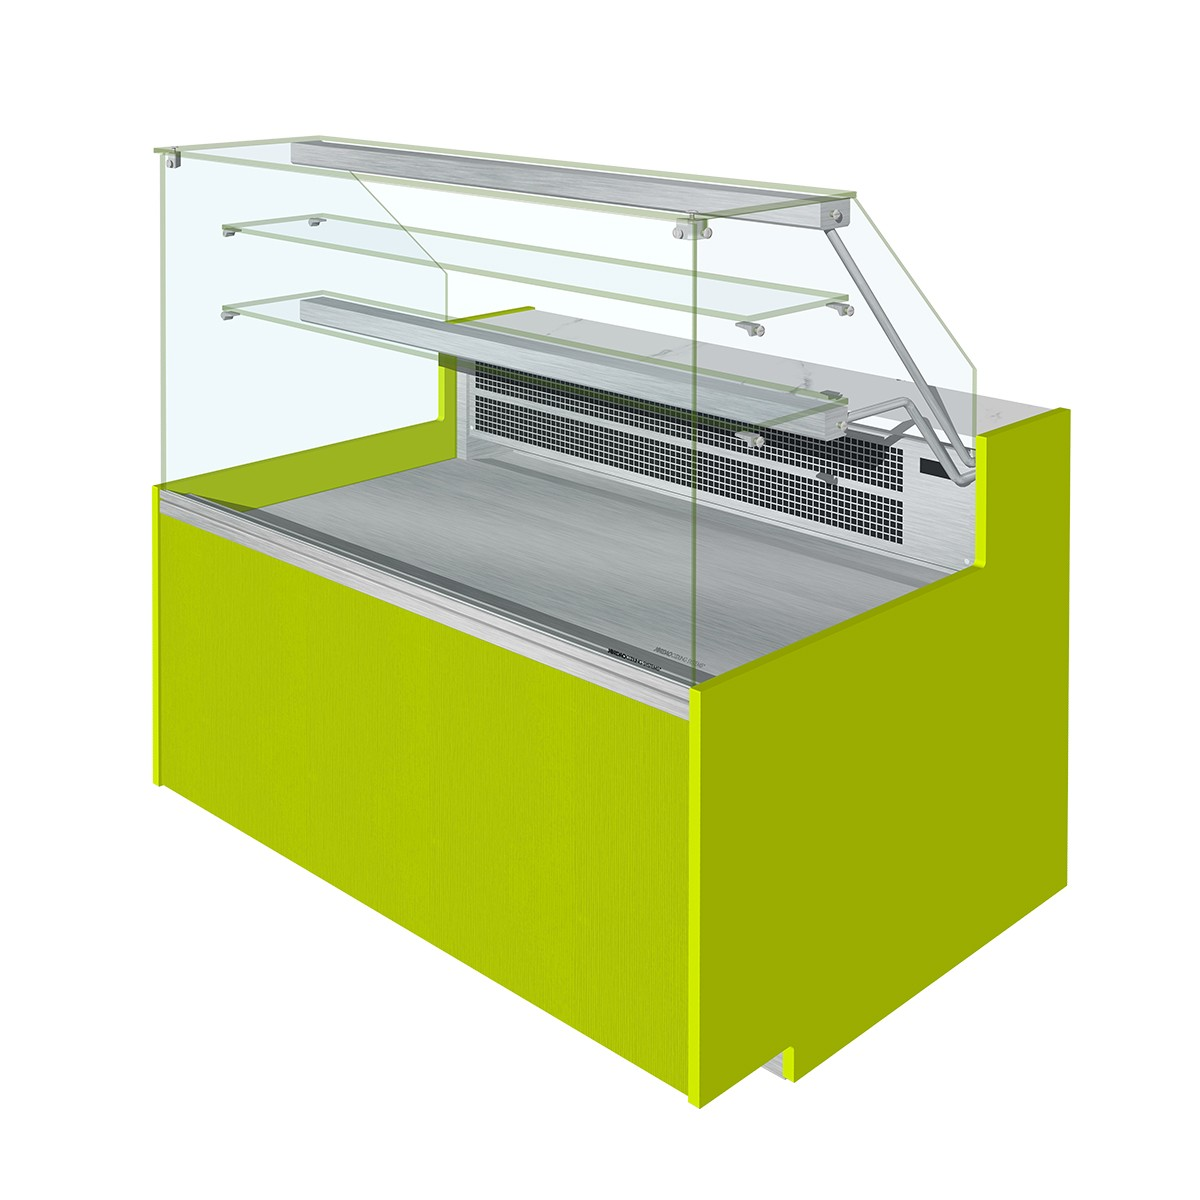 ELINE Flat Glass Serve Over Display Static Cooled No Understorage